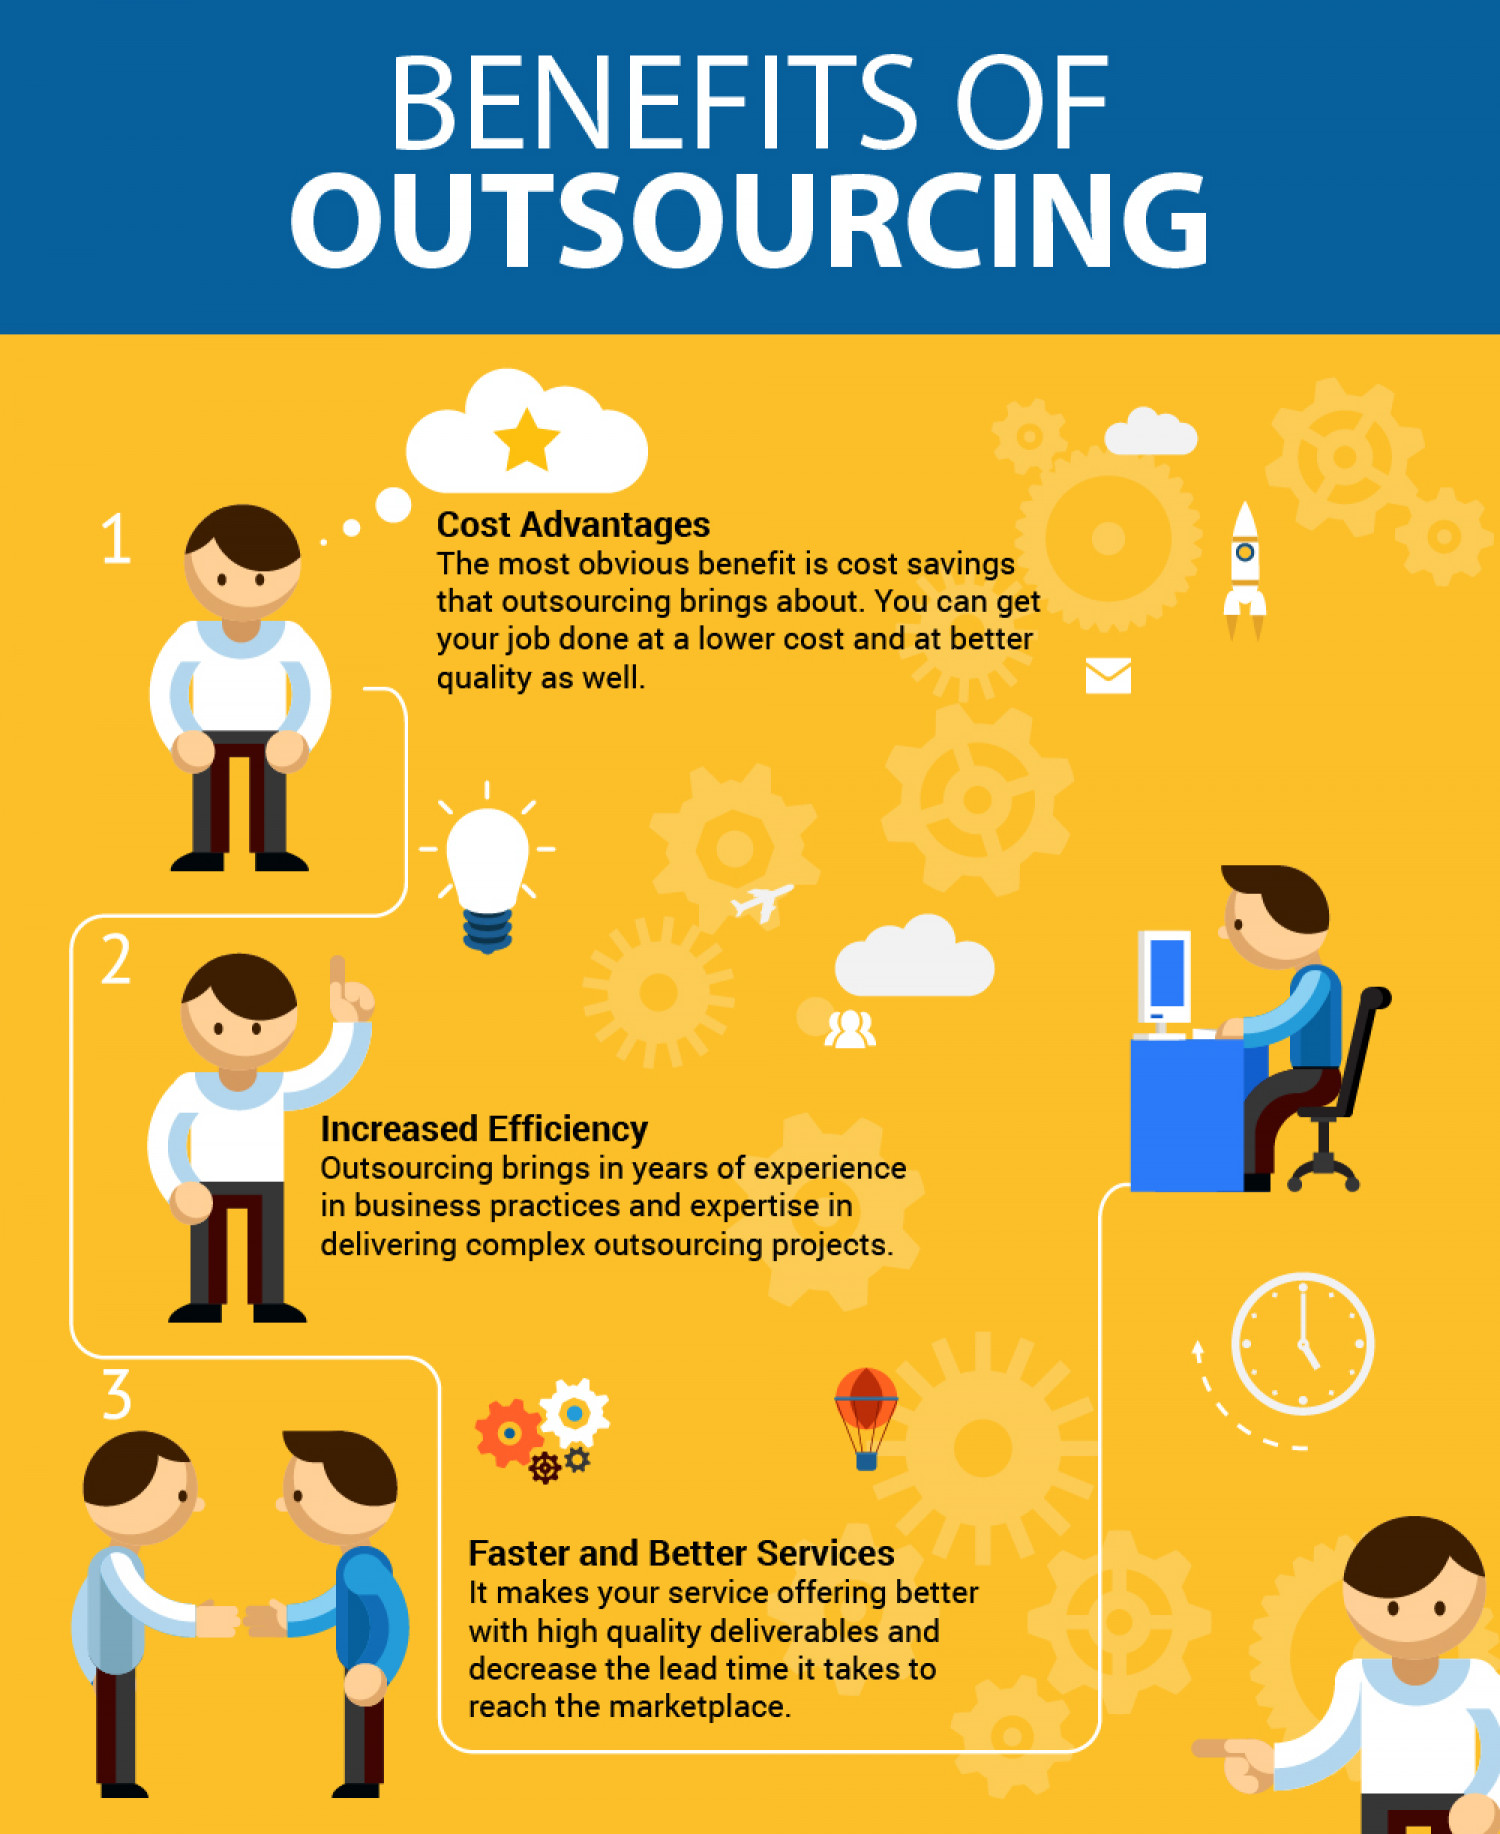 Benefits of outsourcing Infographic